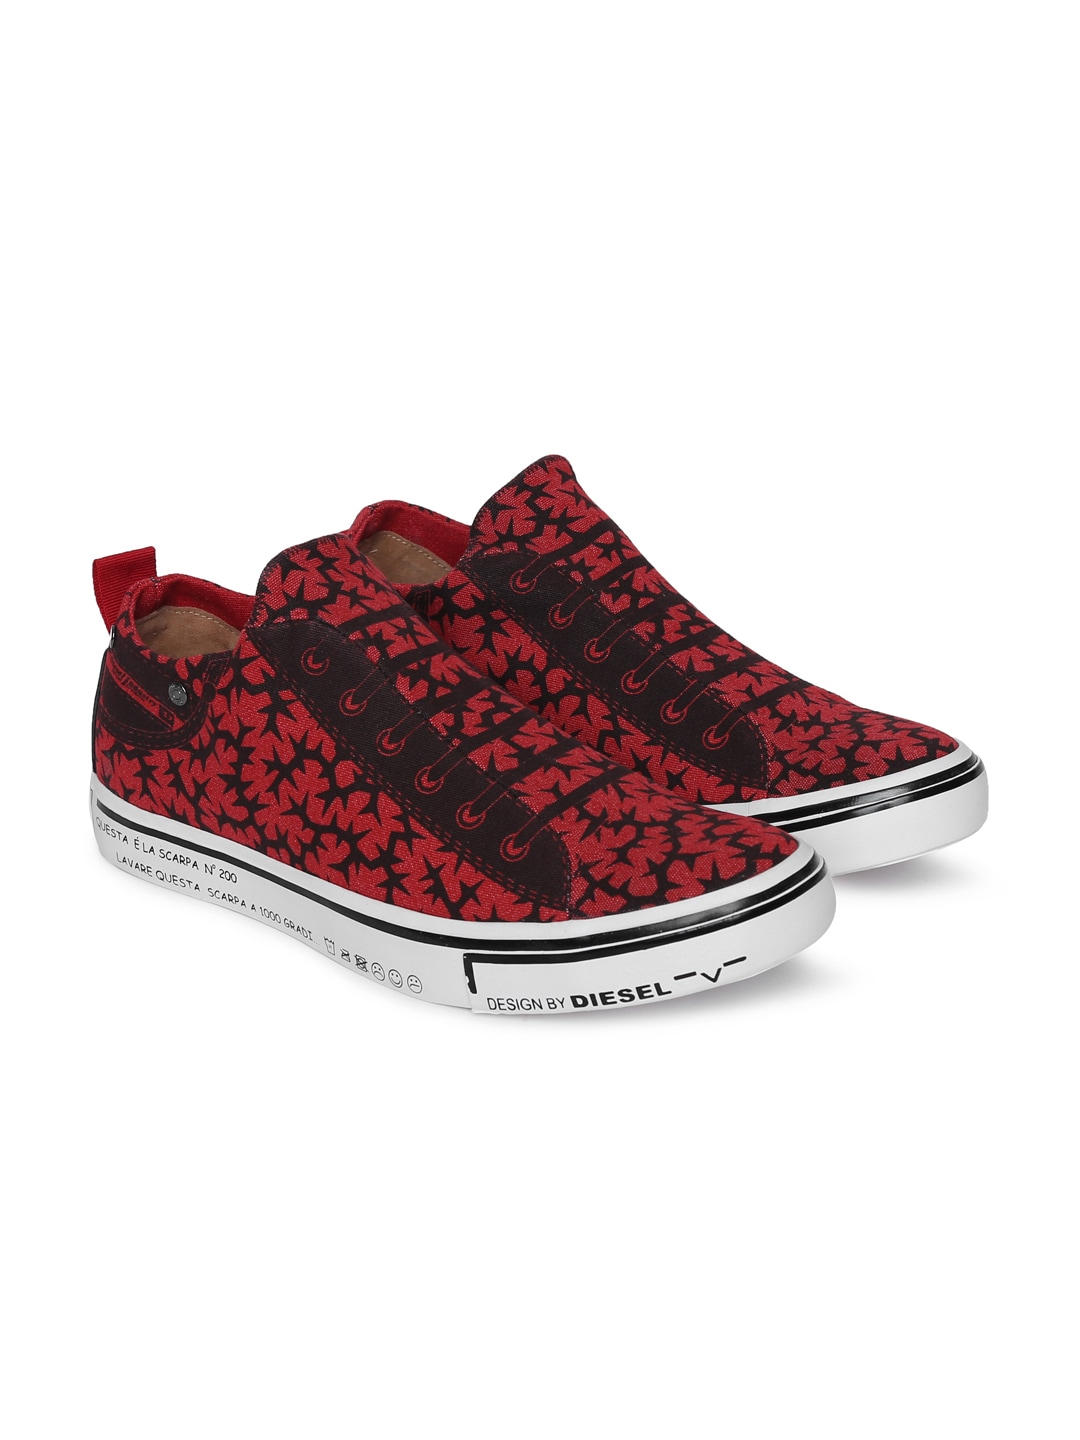 acd7d9864d0 Women s Canvas Shoes - Buy Canvas Shoes for Women Online in India